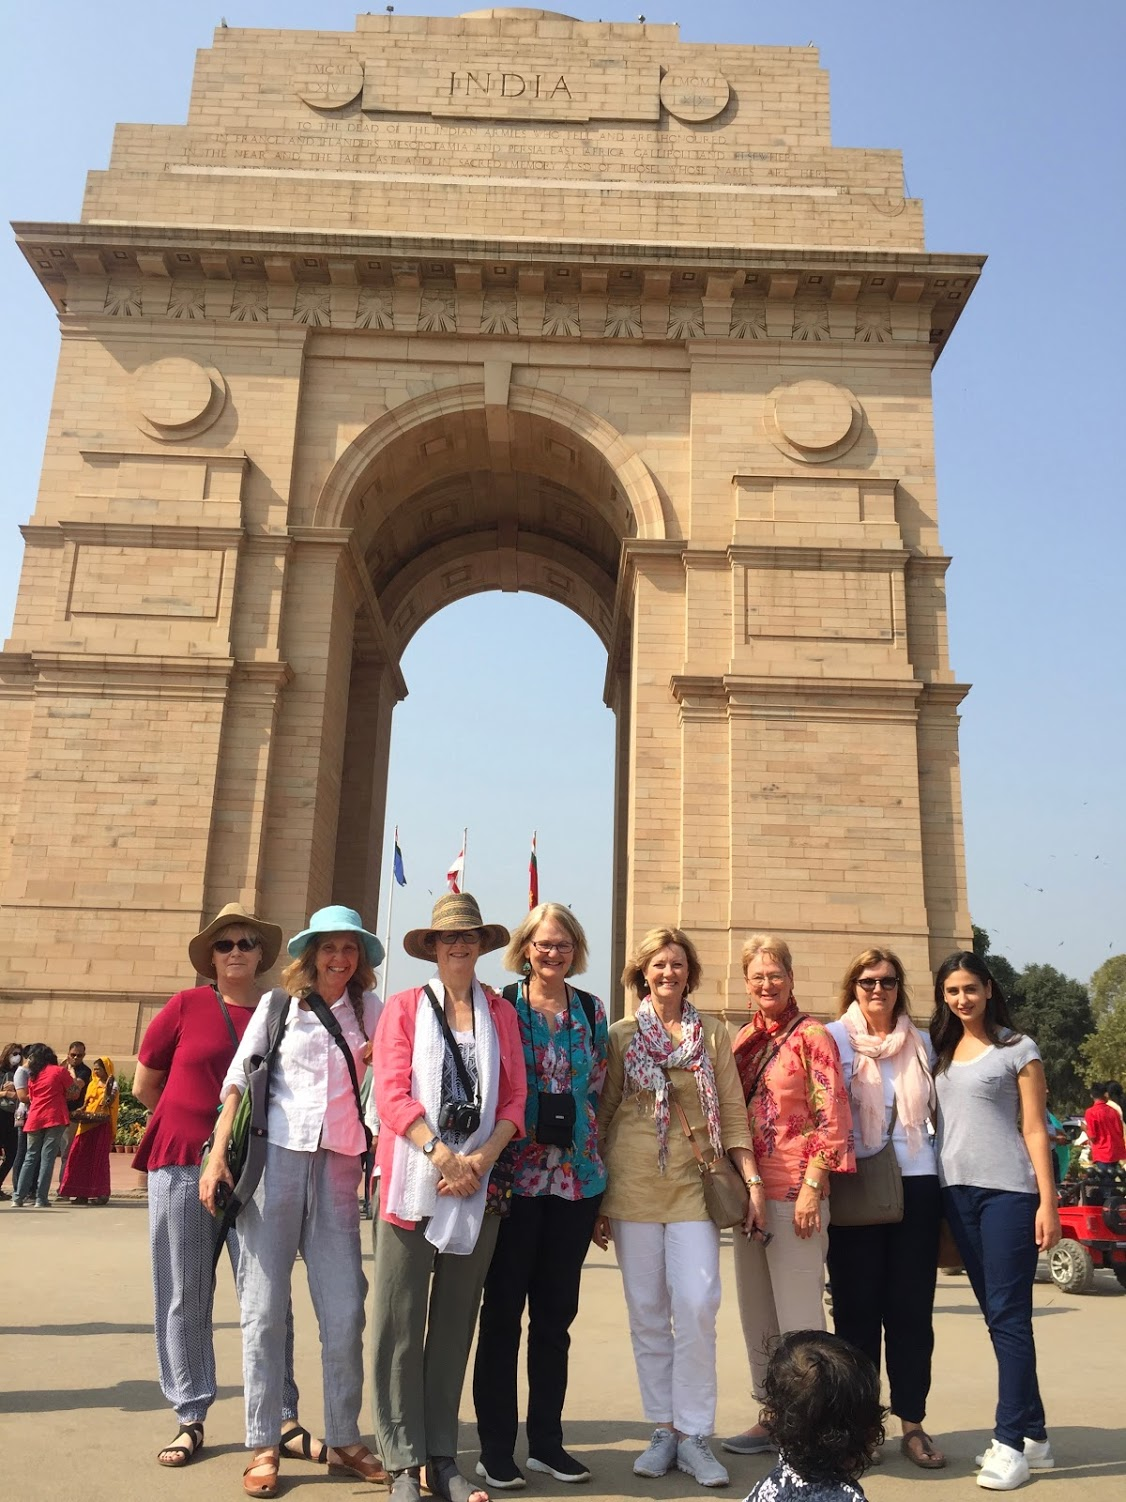 Day Ten: The women at India Gate.